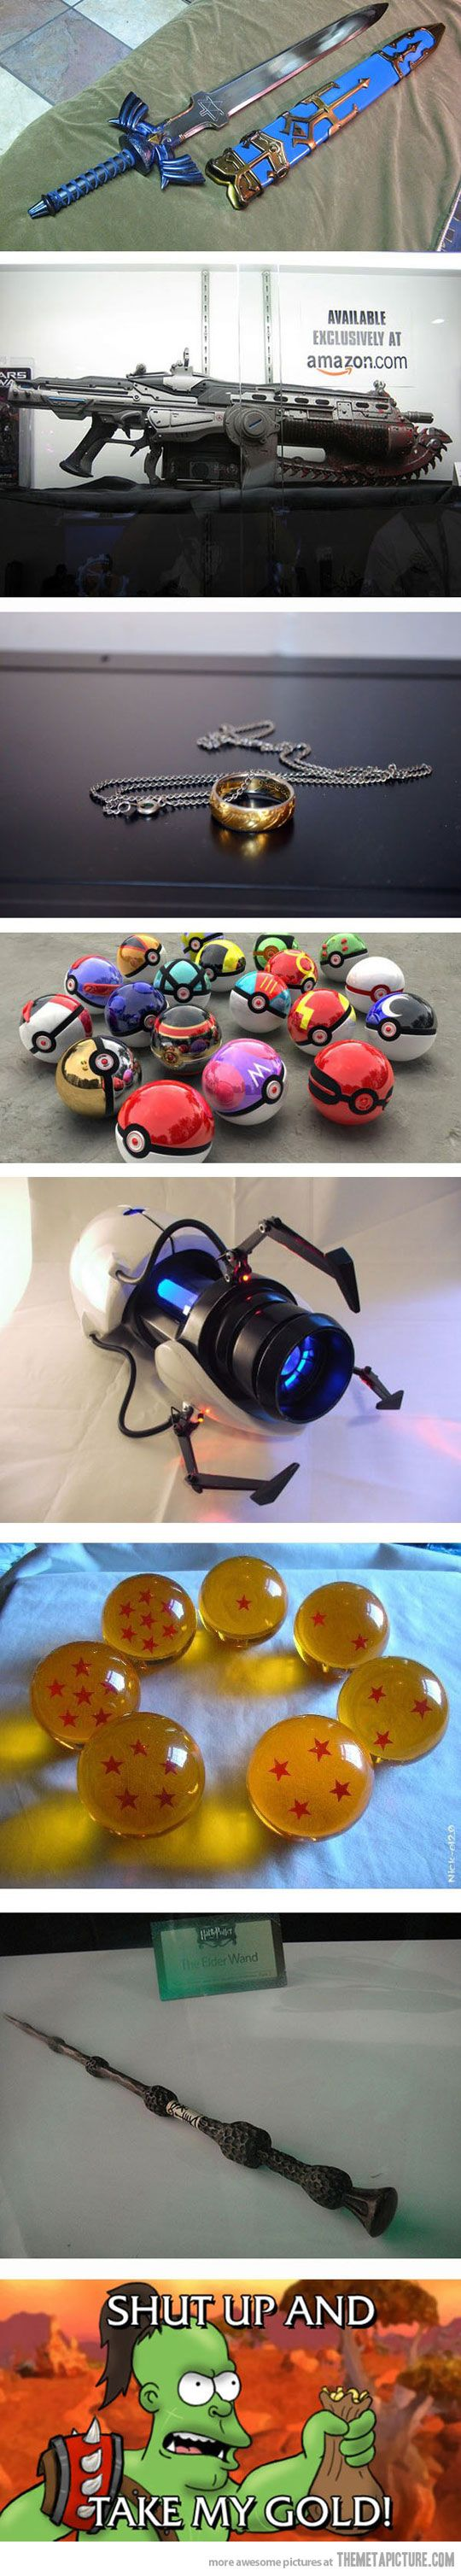 Must-have geek & gamer items